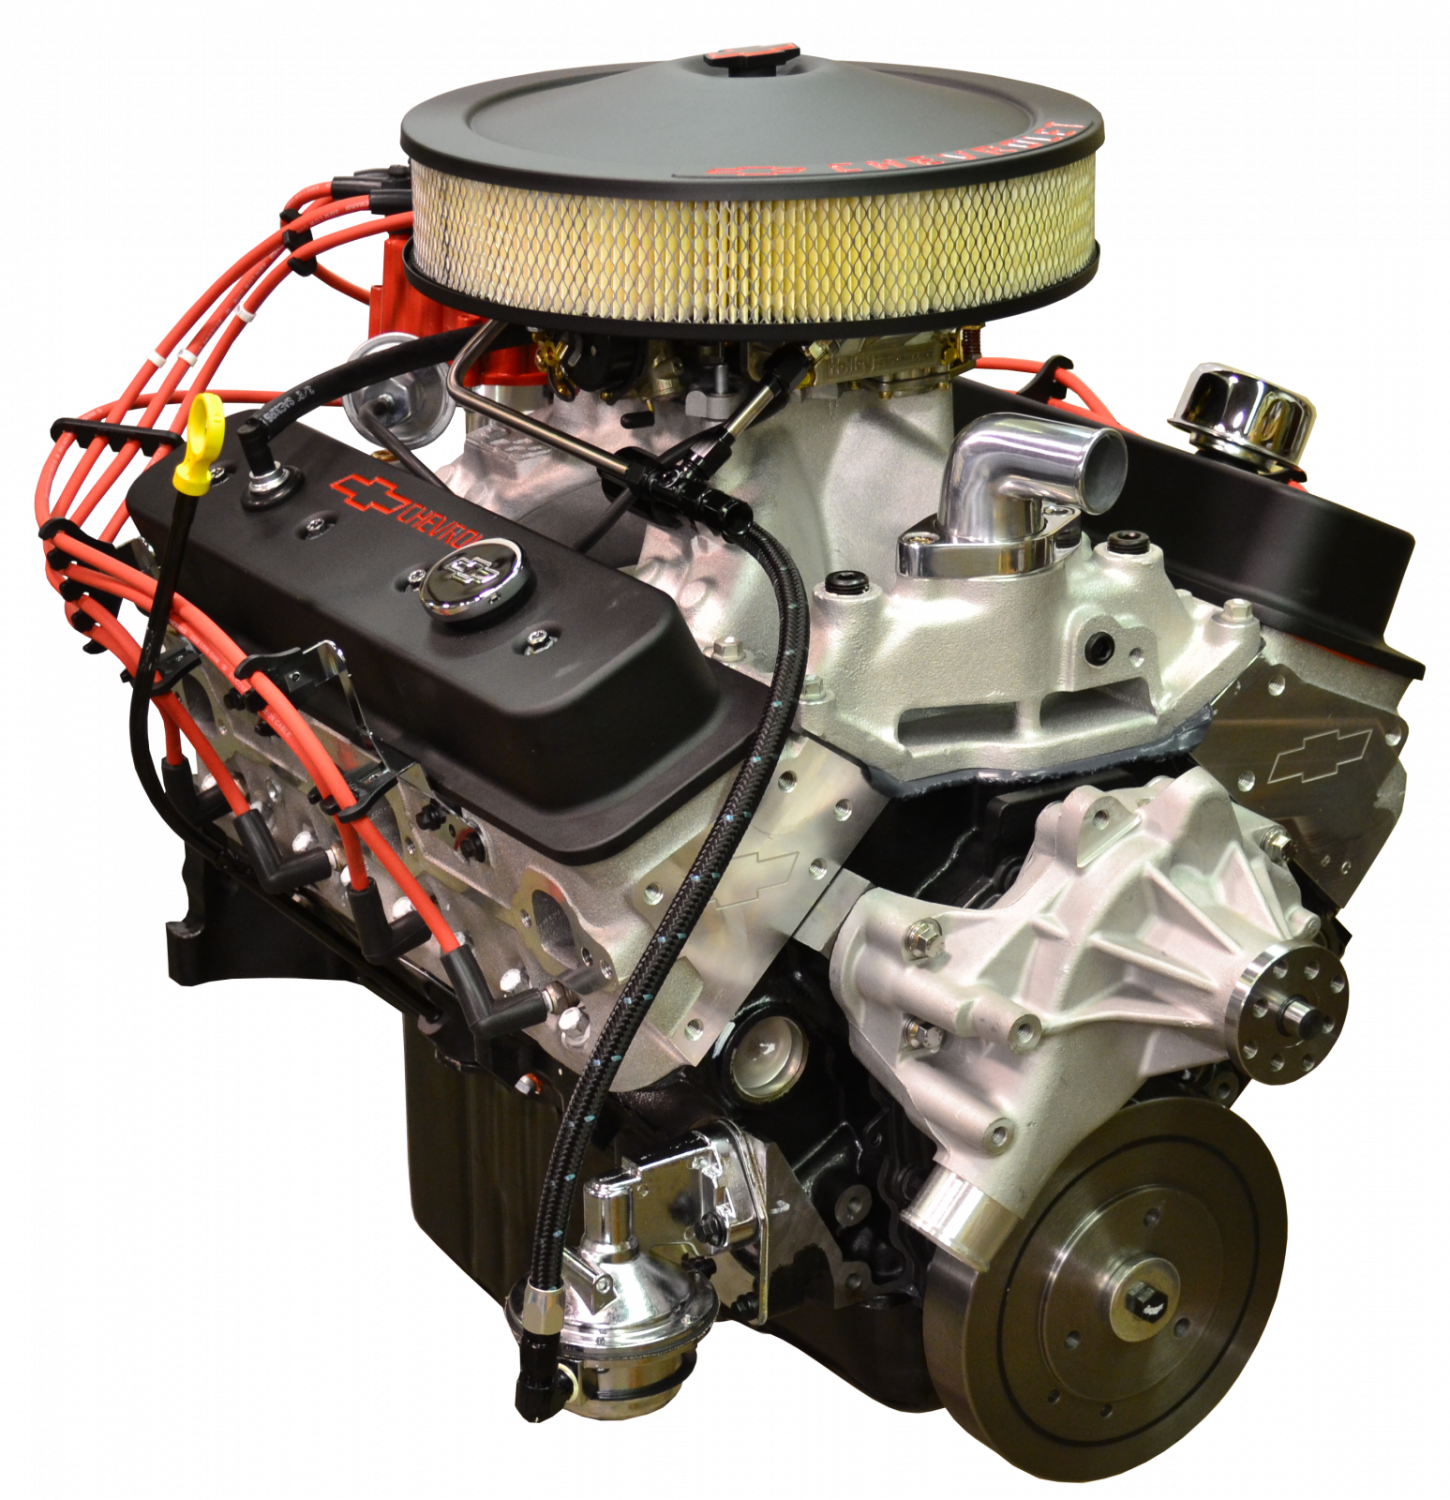 Pace Performance Gmp 19355722 2x Prepped Primed Sp383 5 3 Vortec Crate Engine With Wiring Harness Free 435hp Black